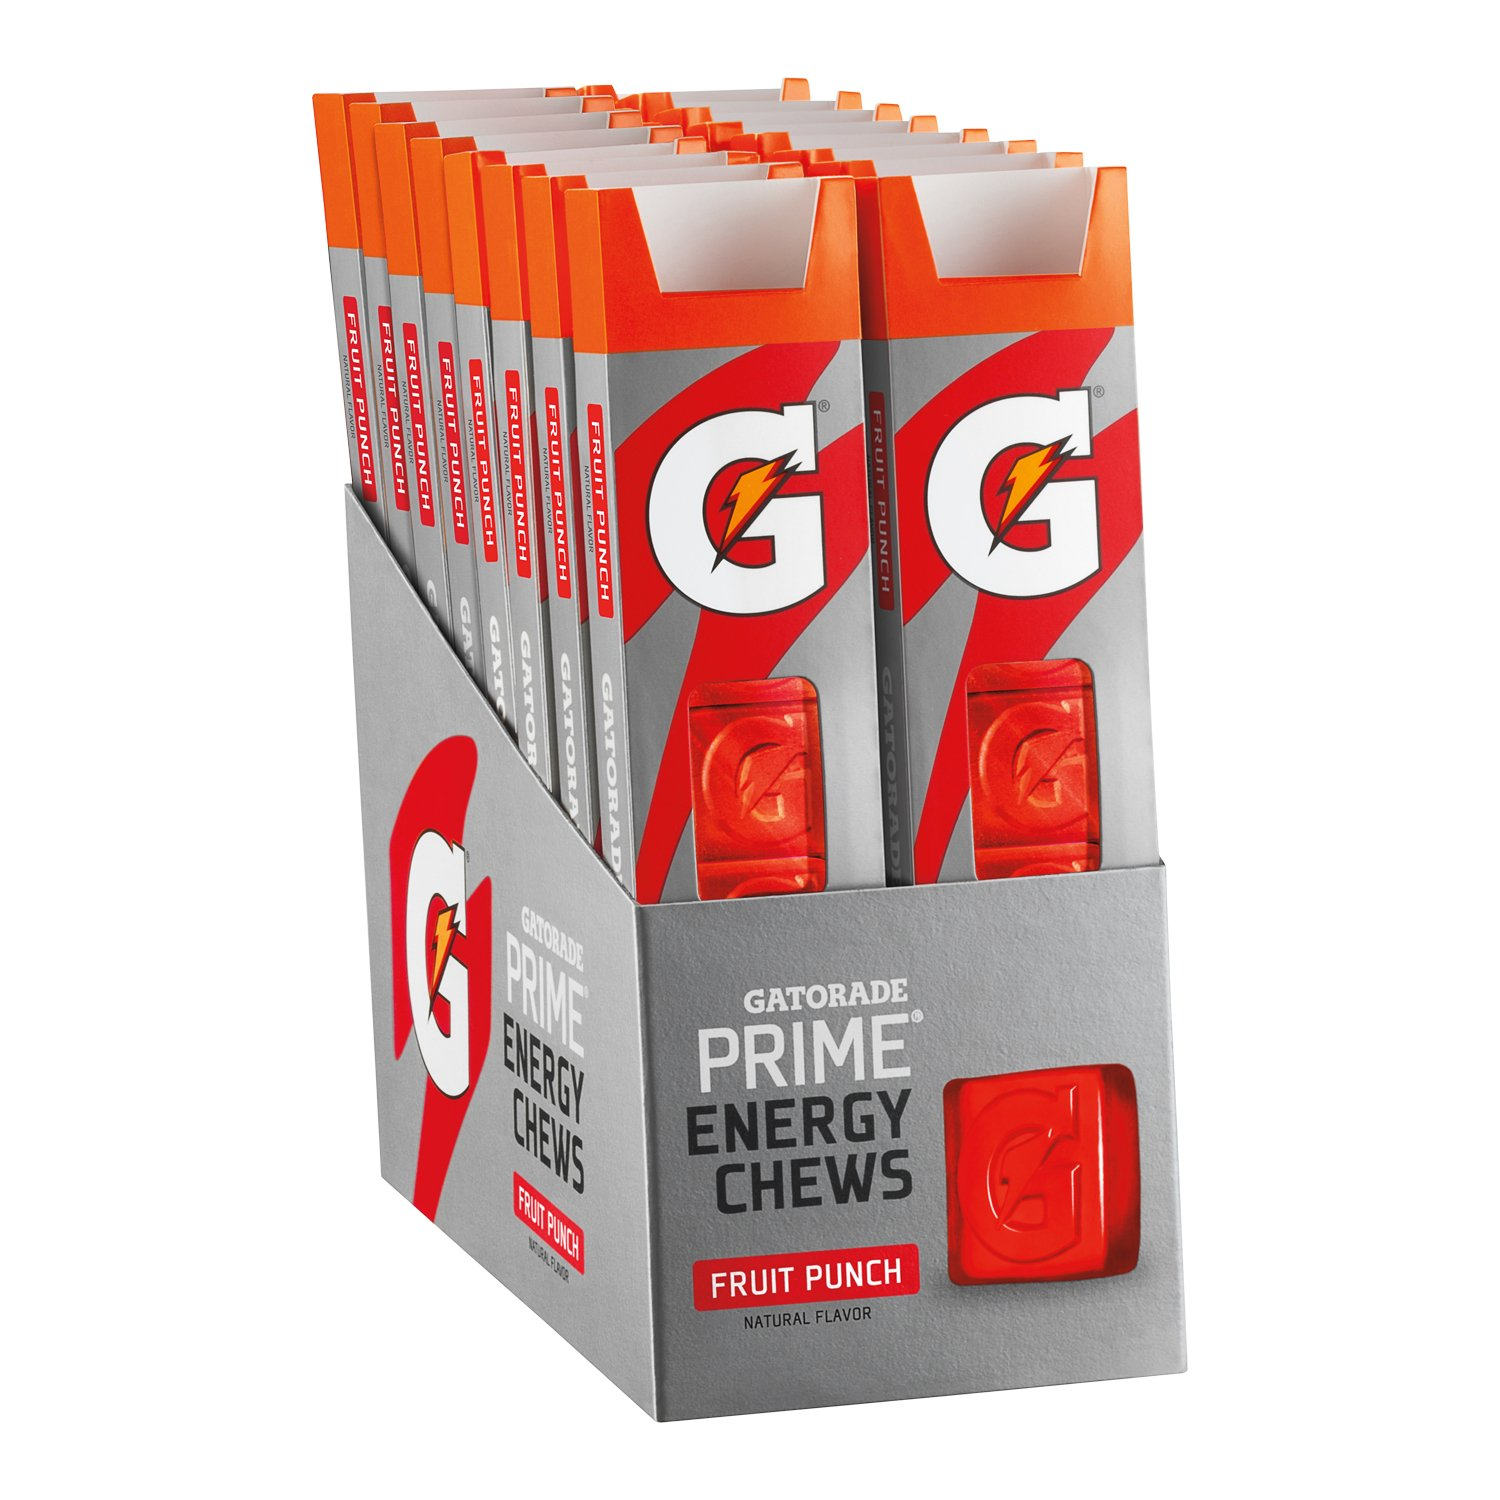 Gatorade Prime Energy Chews, Fruit Punch (Pack of 16) by Gatorade